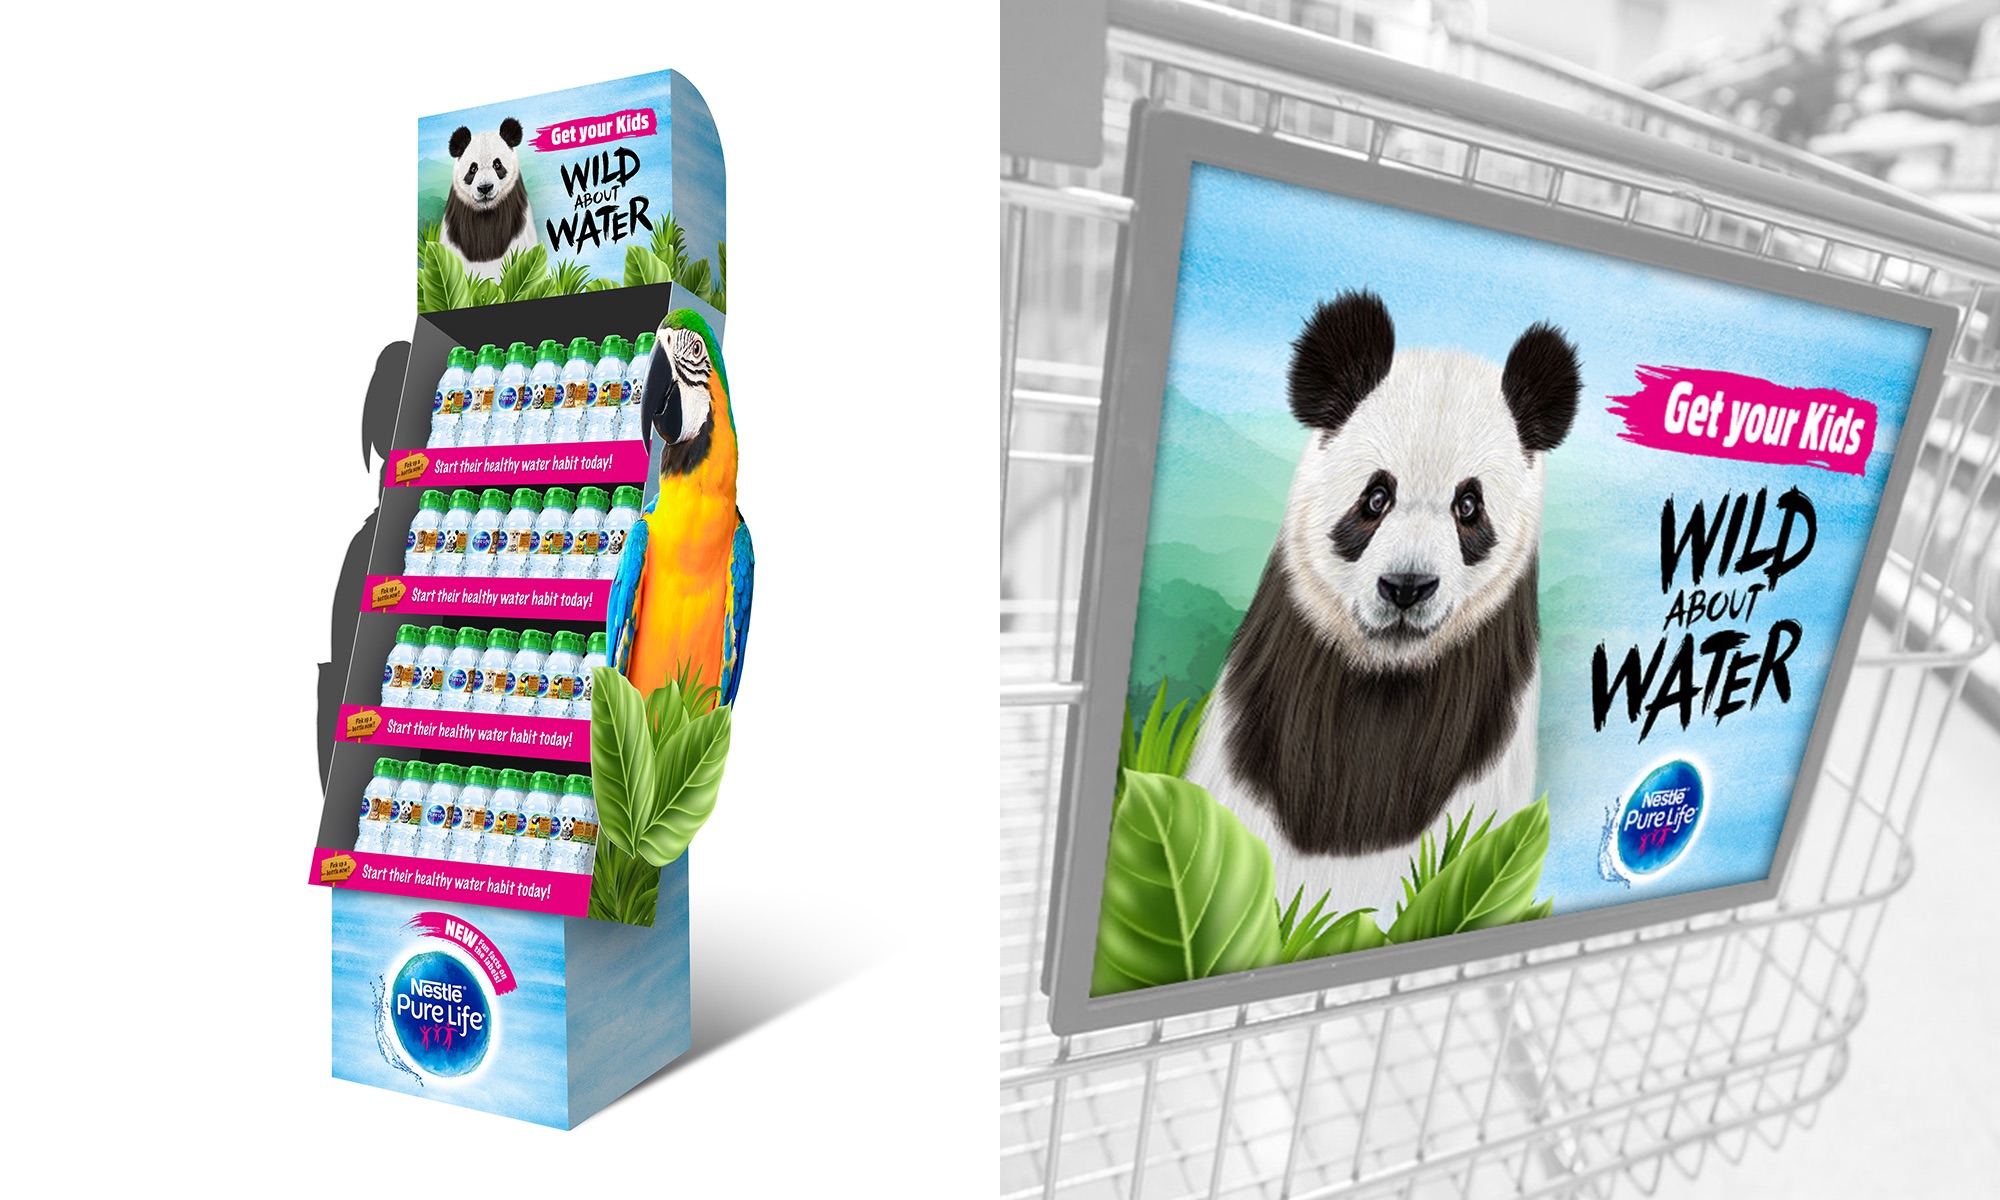 Nestlé Pure Life Kids - Packaging + Photography